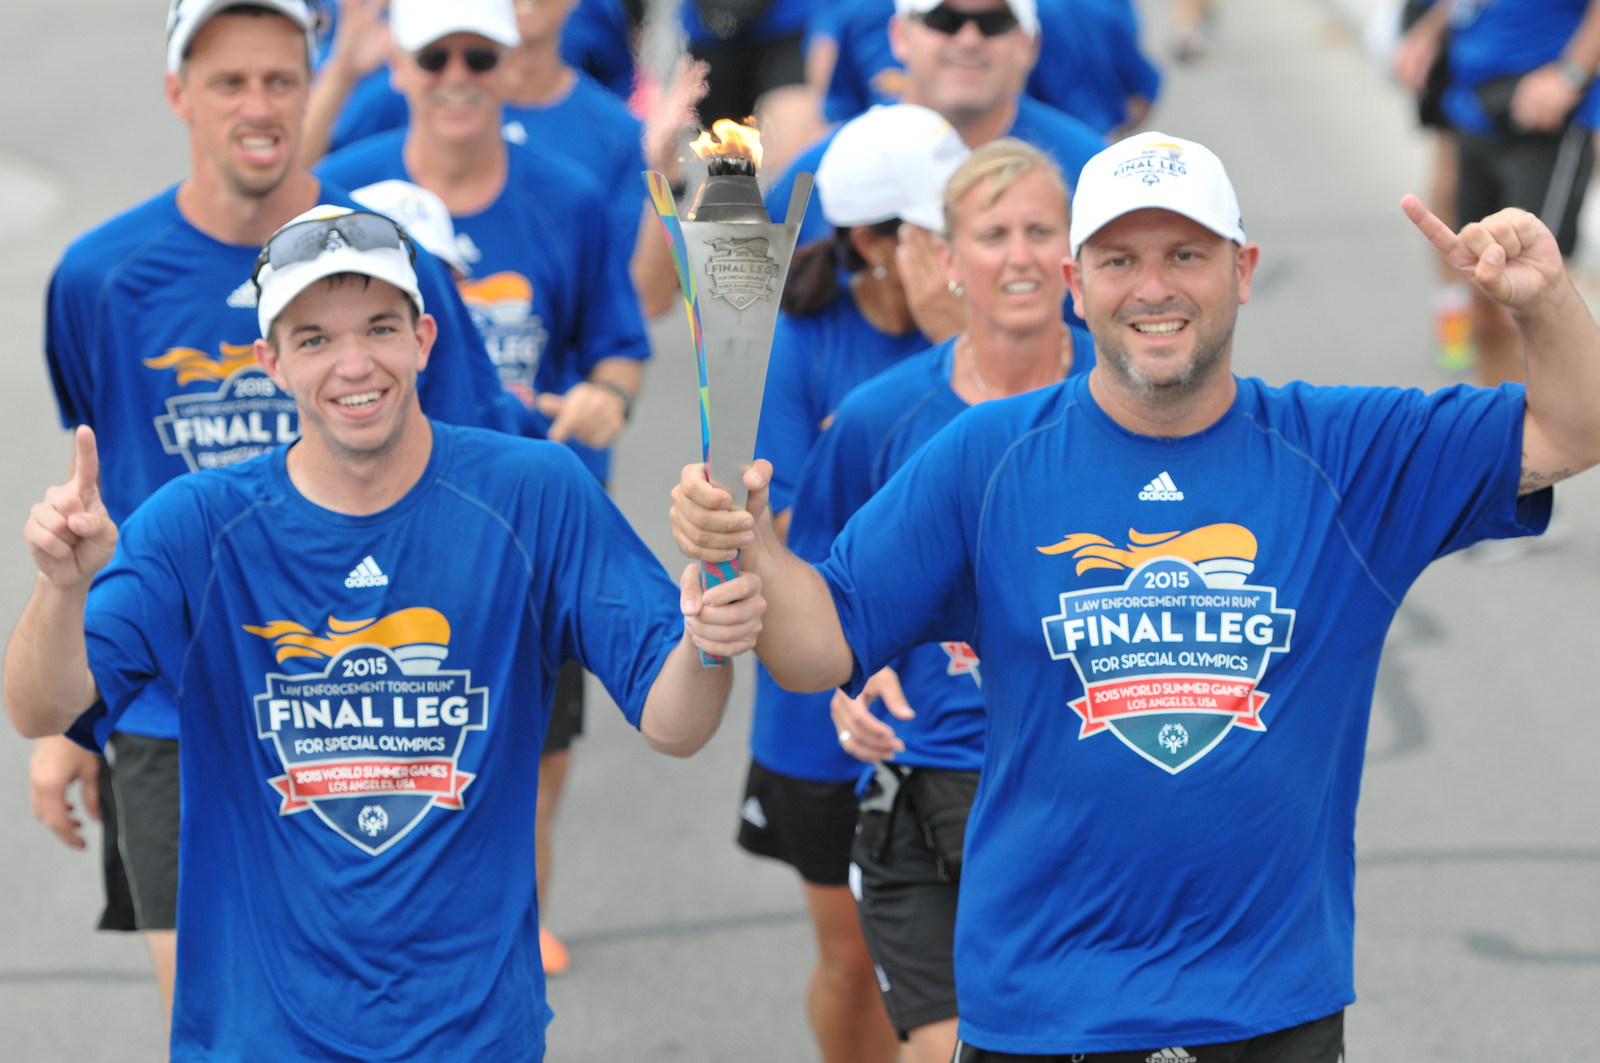 Speical Olympics Torch Run 2